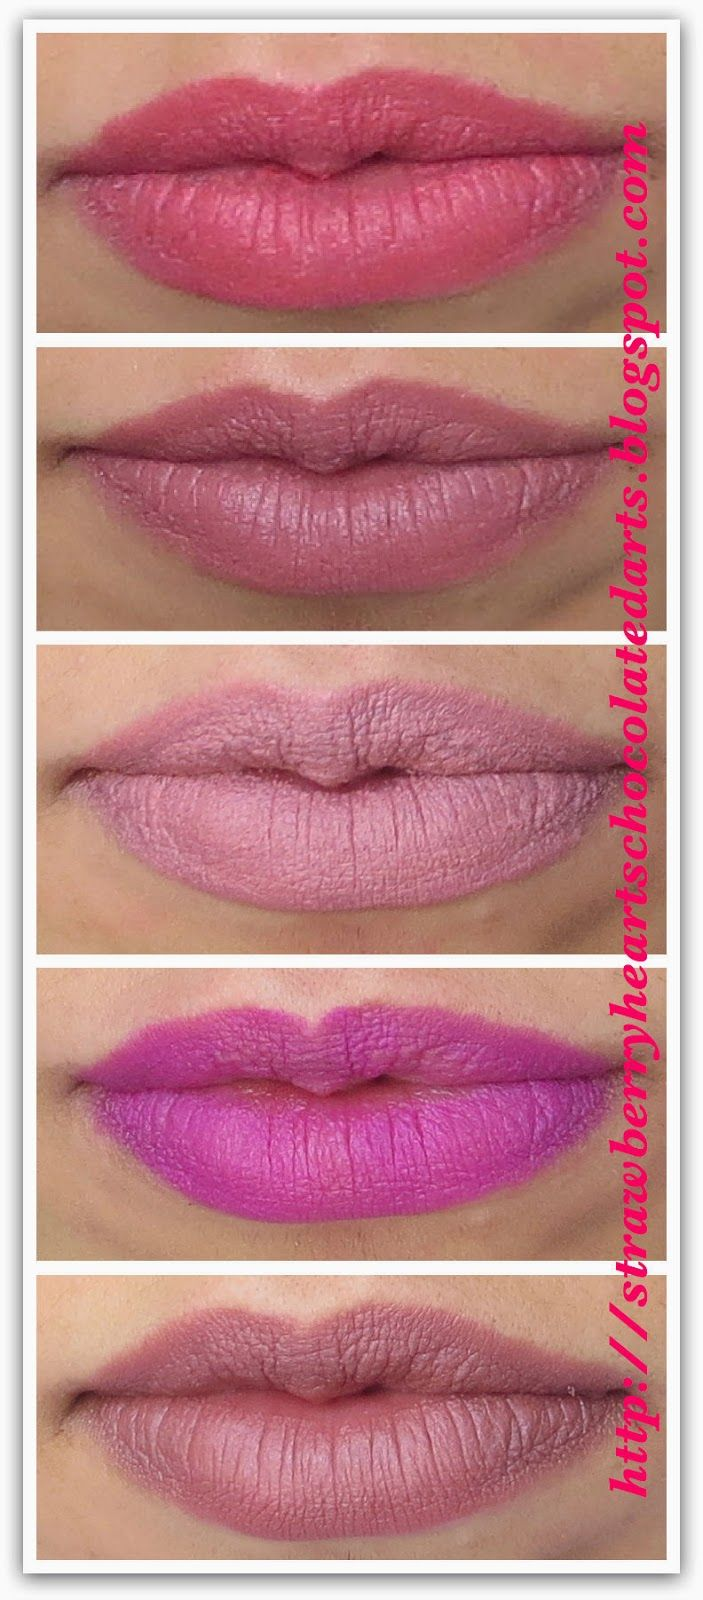 Strawberry Hearts Chocolate Darts: LORAC Alter Ego Lipsticks: Seductress, CEO, Duchess, Jet Setter and Secret Agent